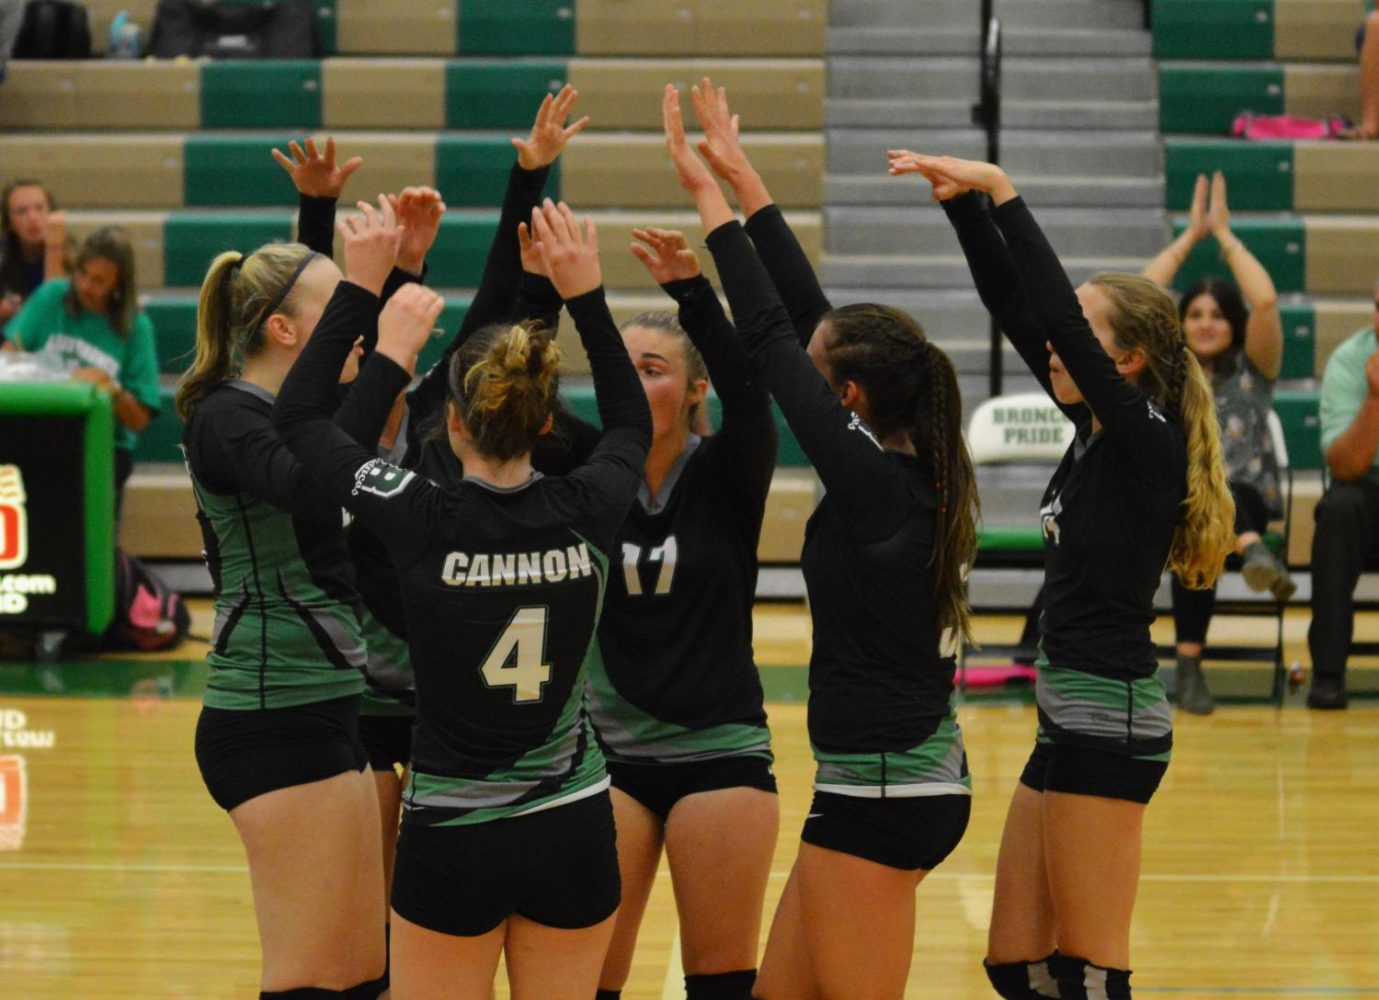 HANDS IN THE AIR. The varsity team rejoices over a point scored against Pocatello.